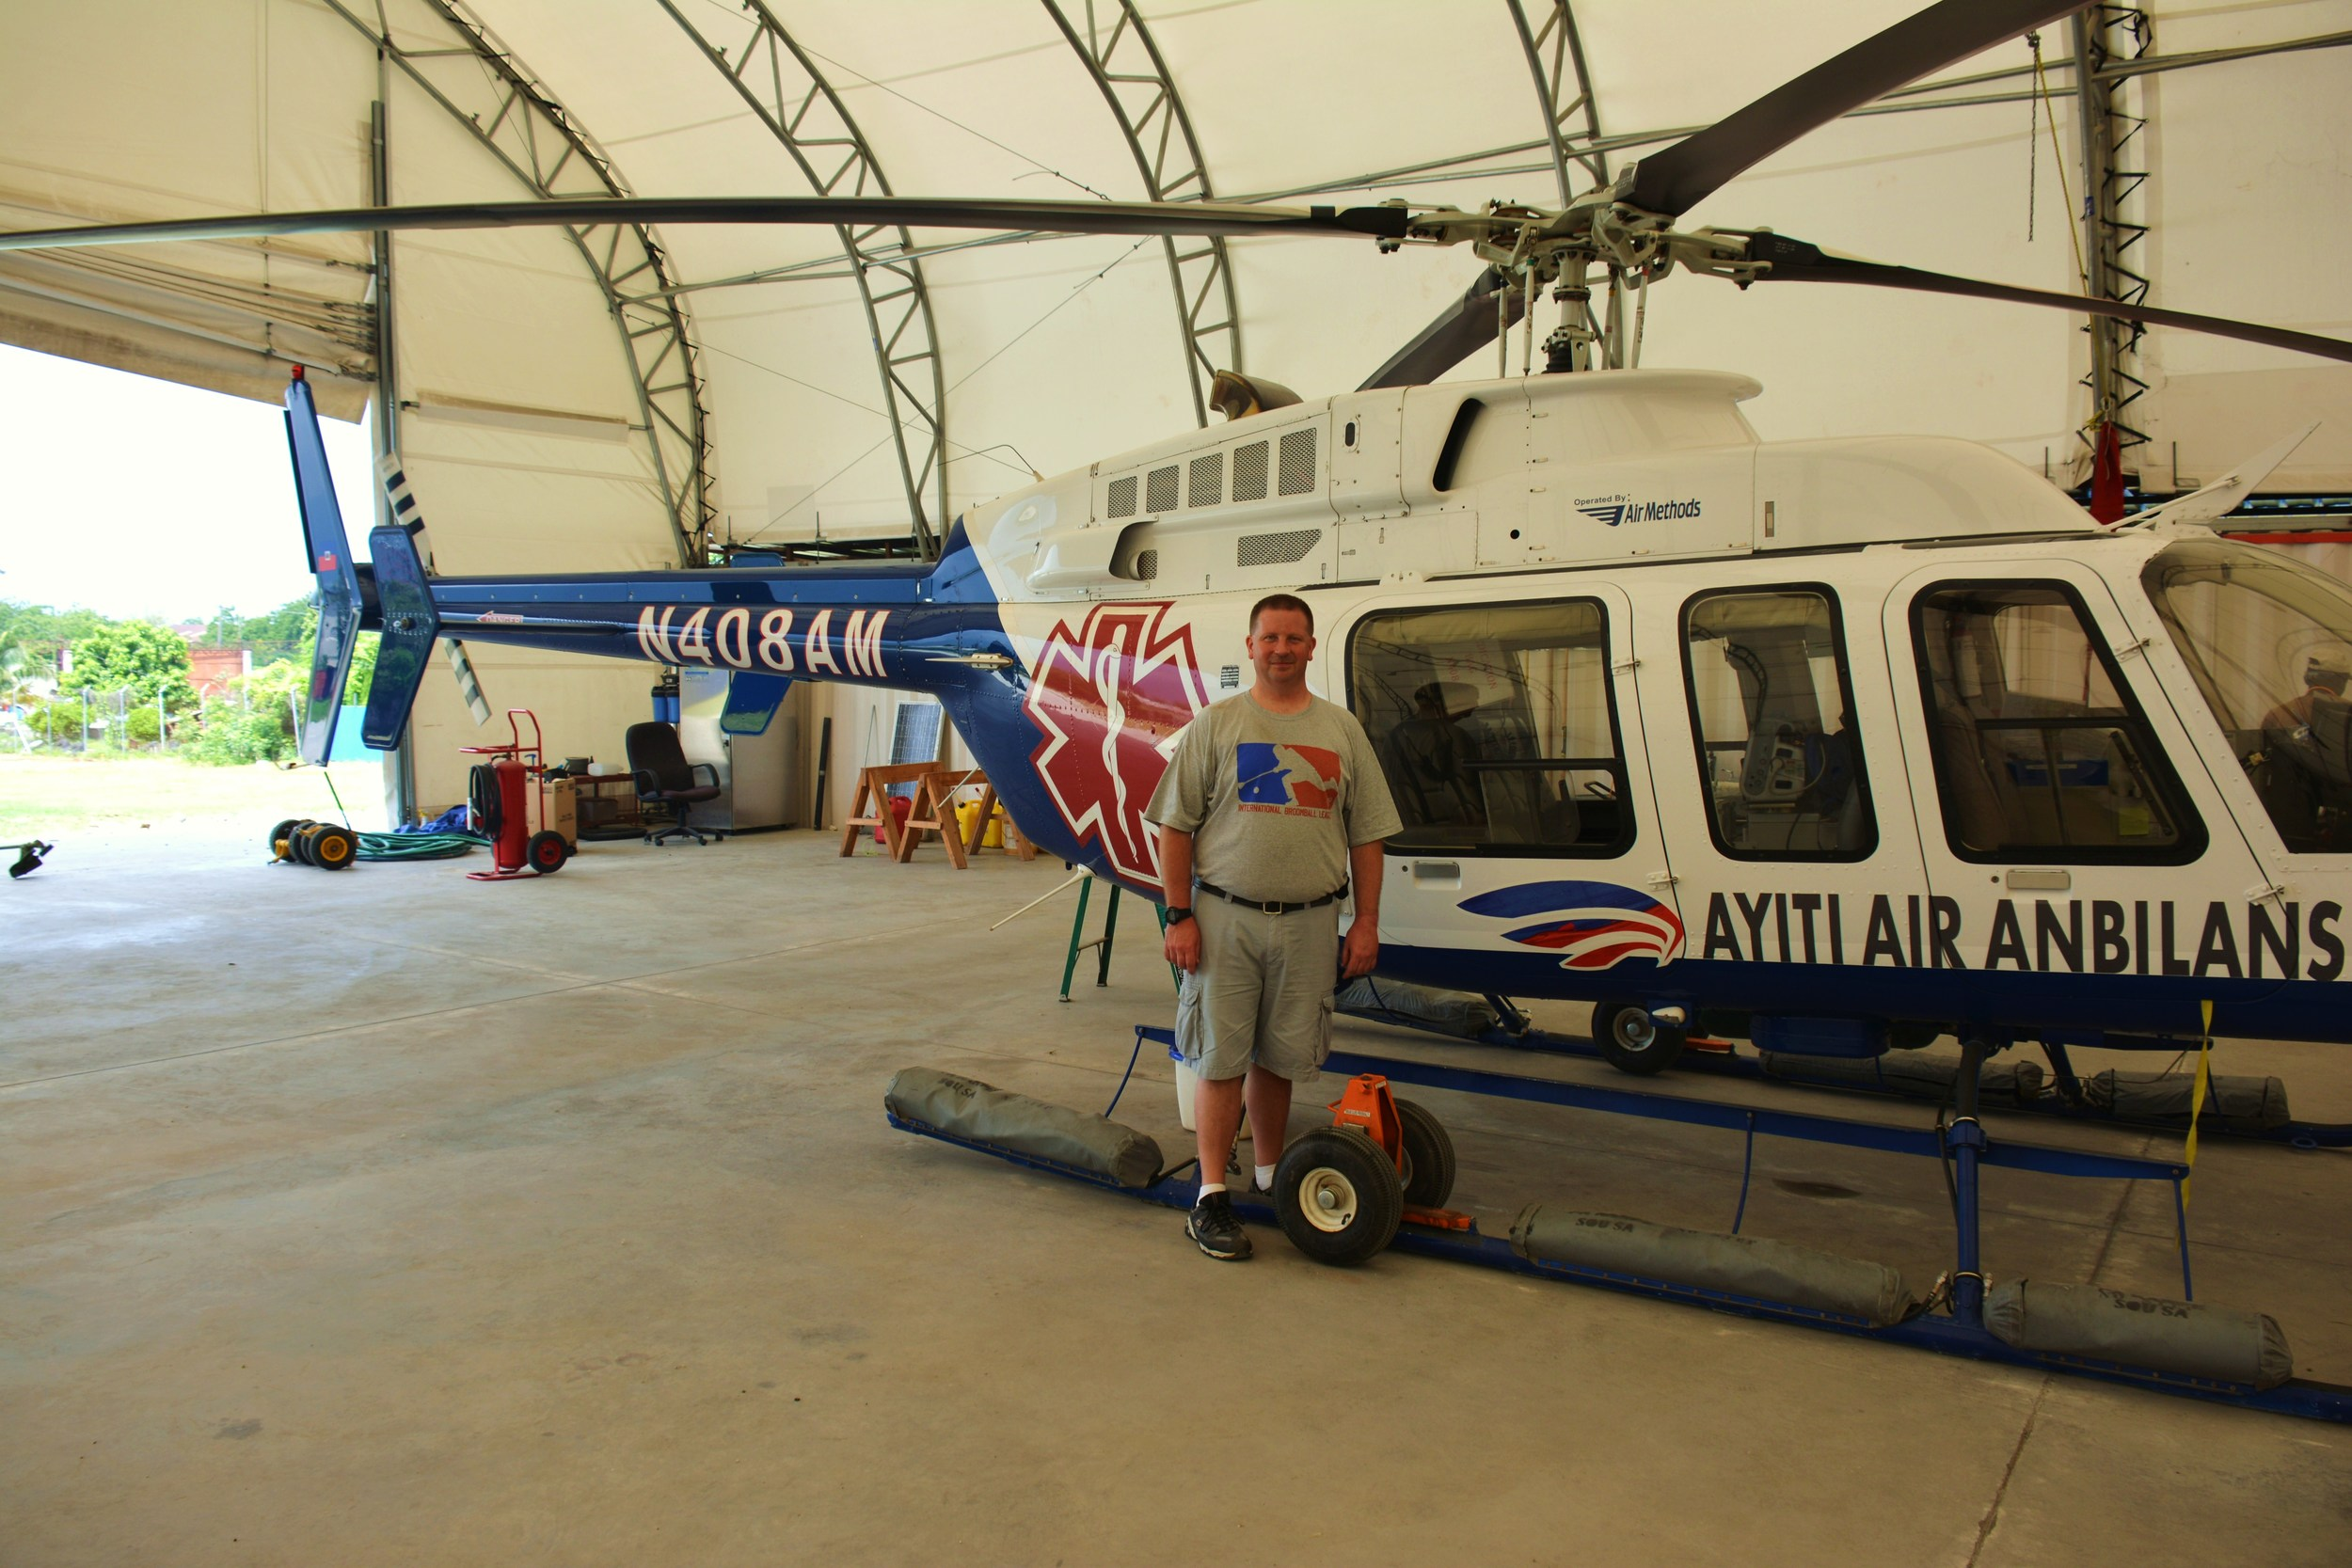 My visit to Haiti Air Ambulance. Been there, got the t-shirt!